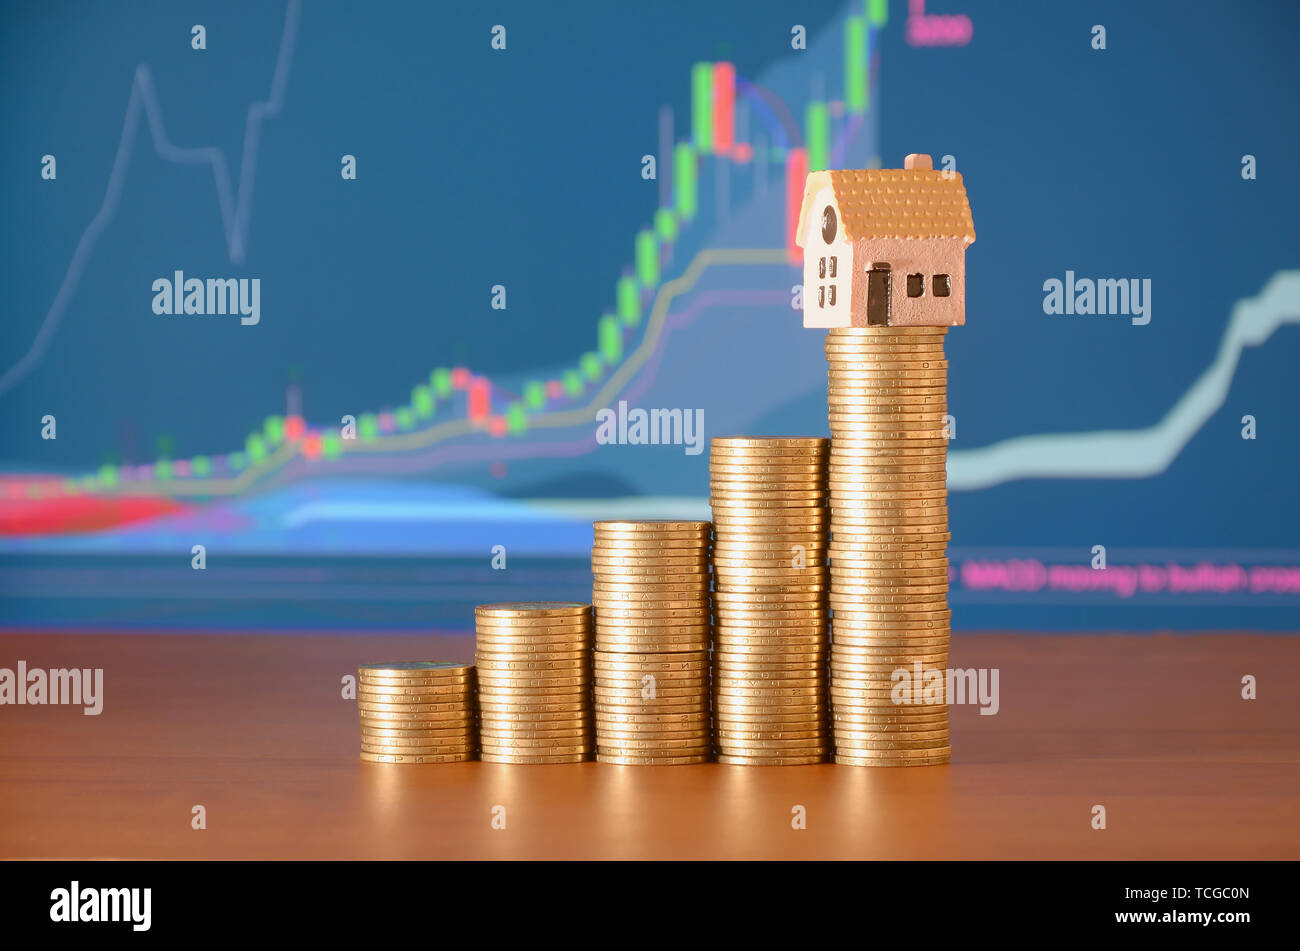 Small toy house model and coins stacks in growth graph. Planning savings money of coins to buy a home concept, mortgage and real estate investment - Stock Image